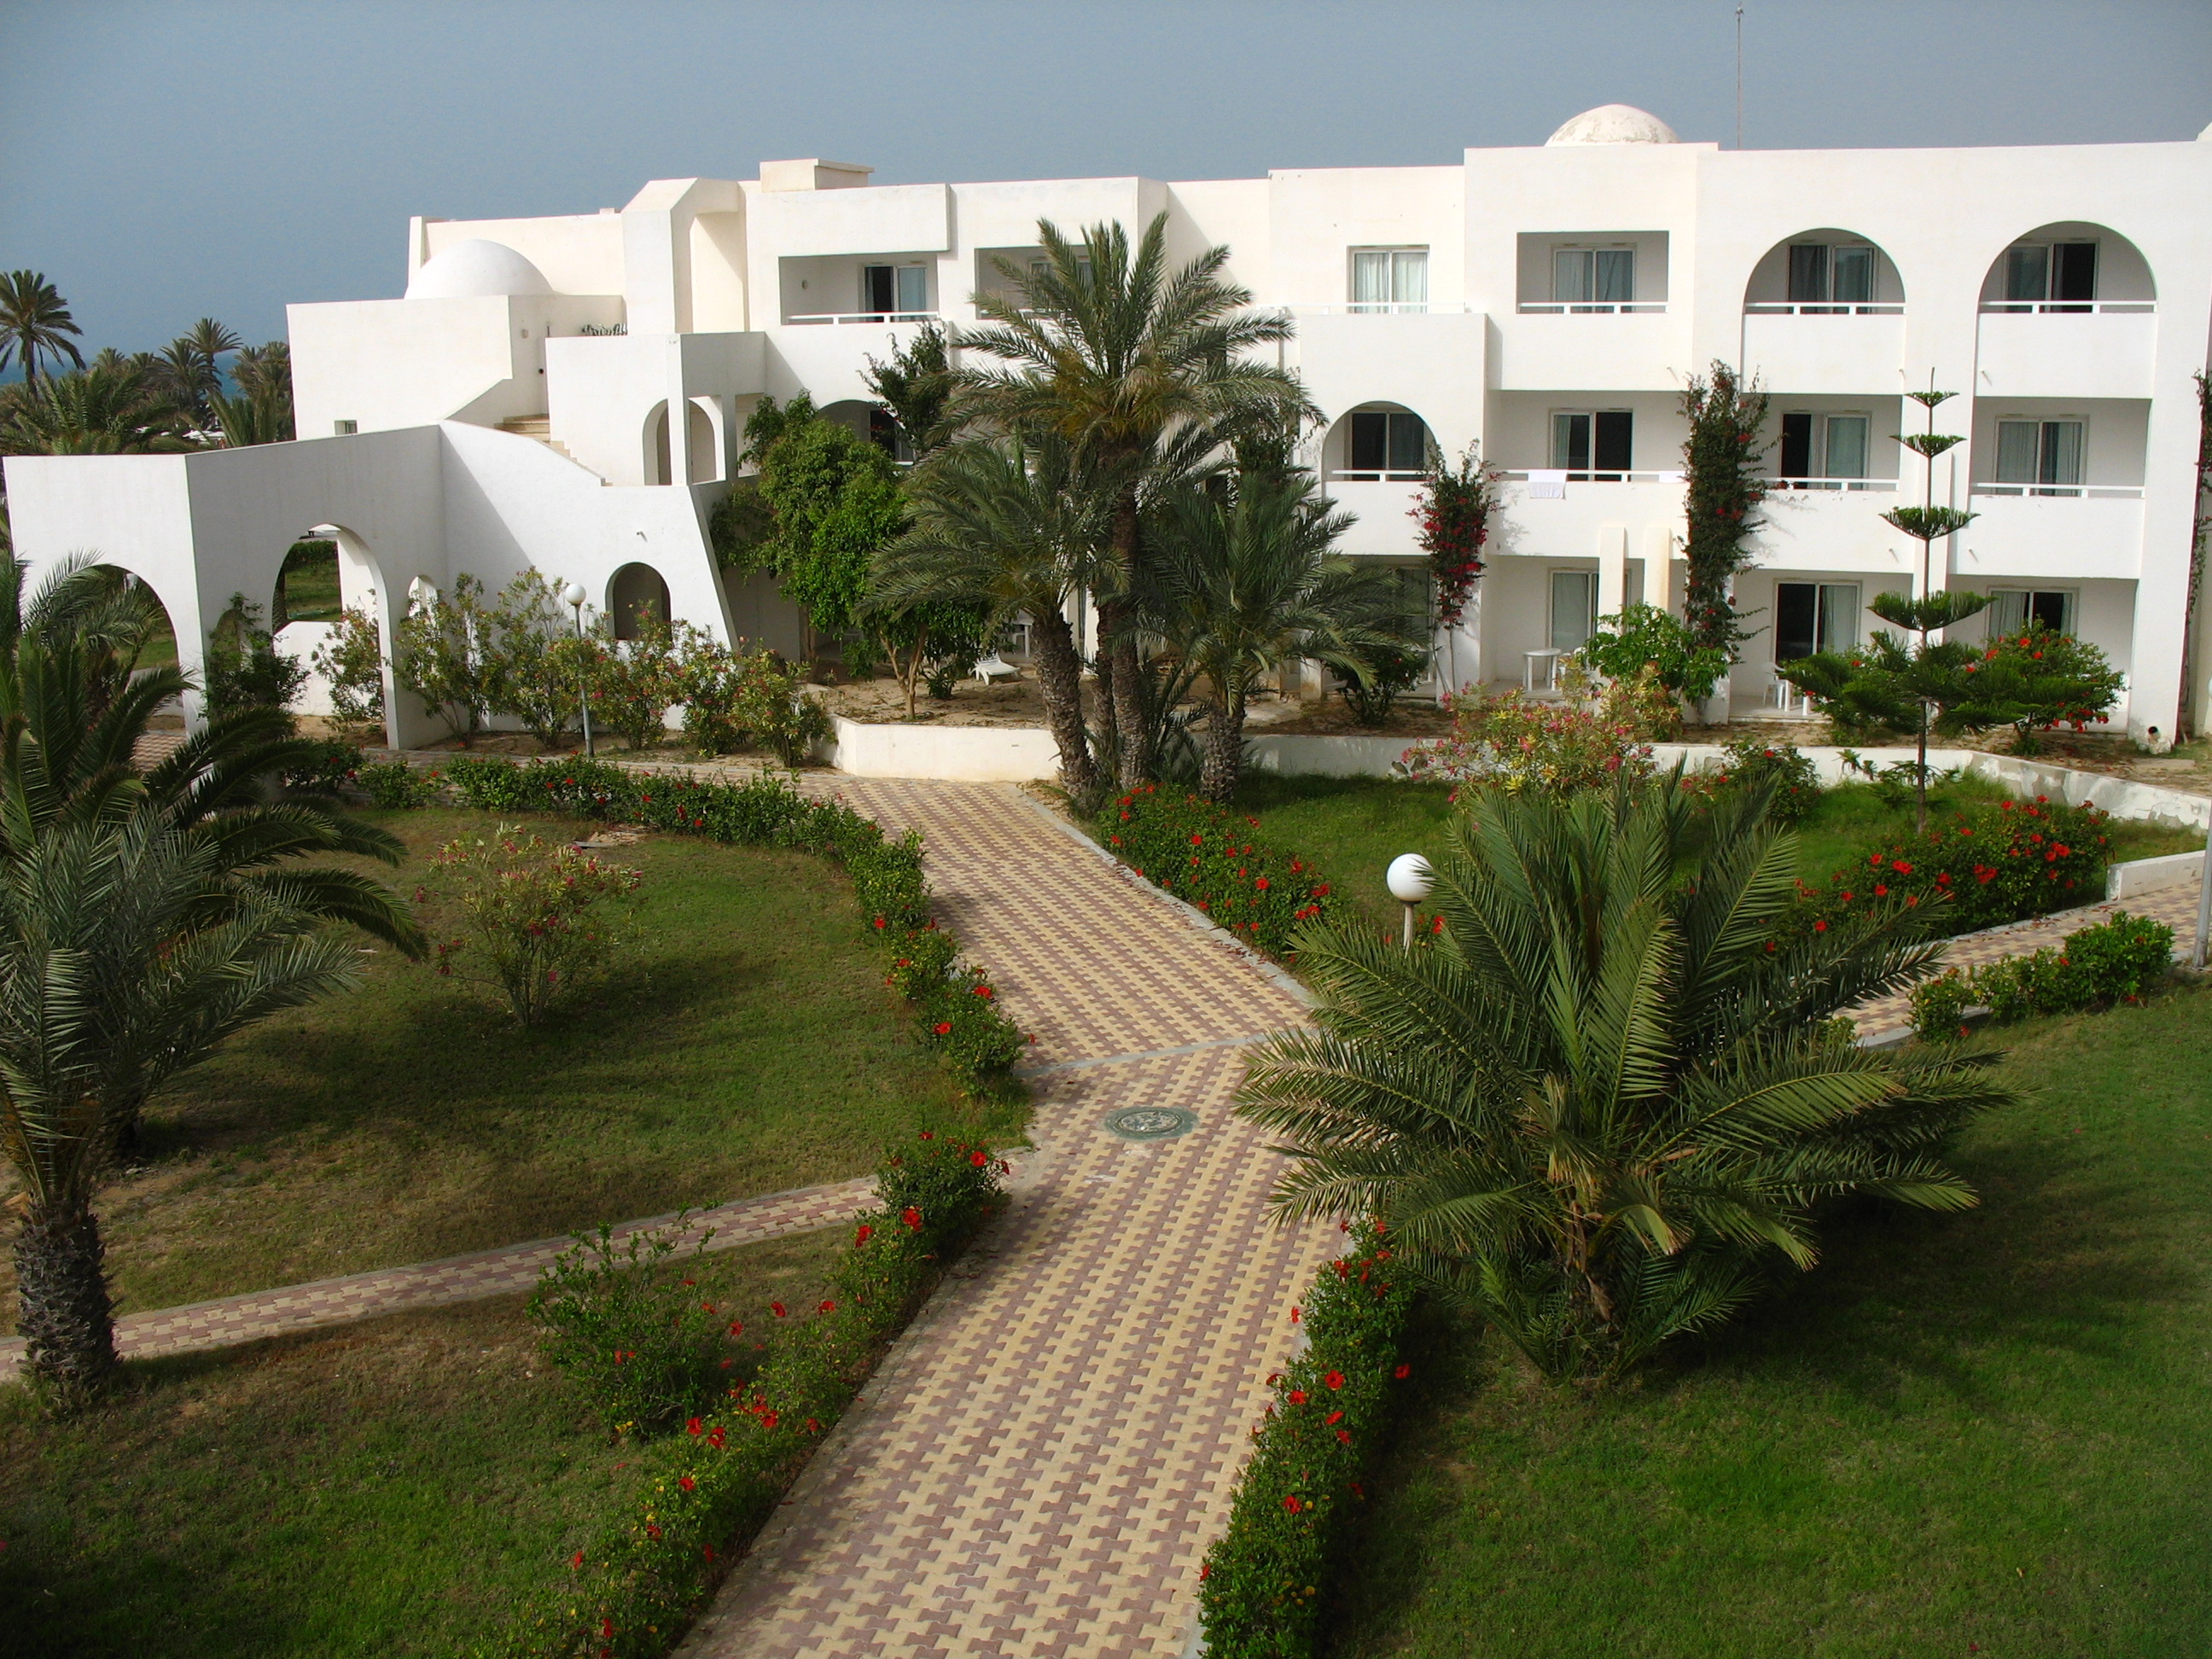 Hotel Djerba Tunisie Booking